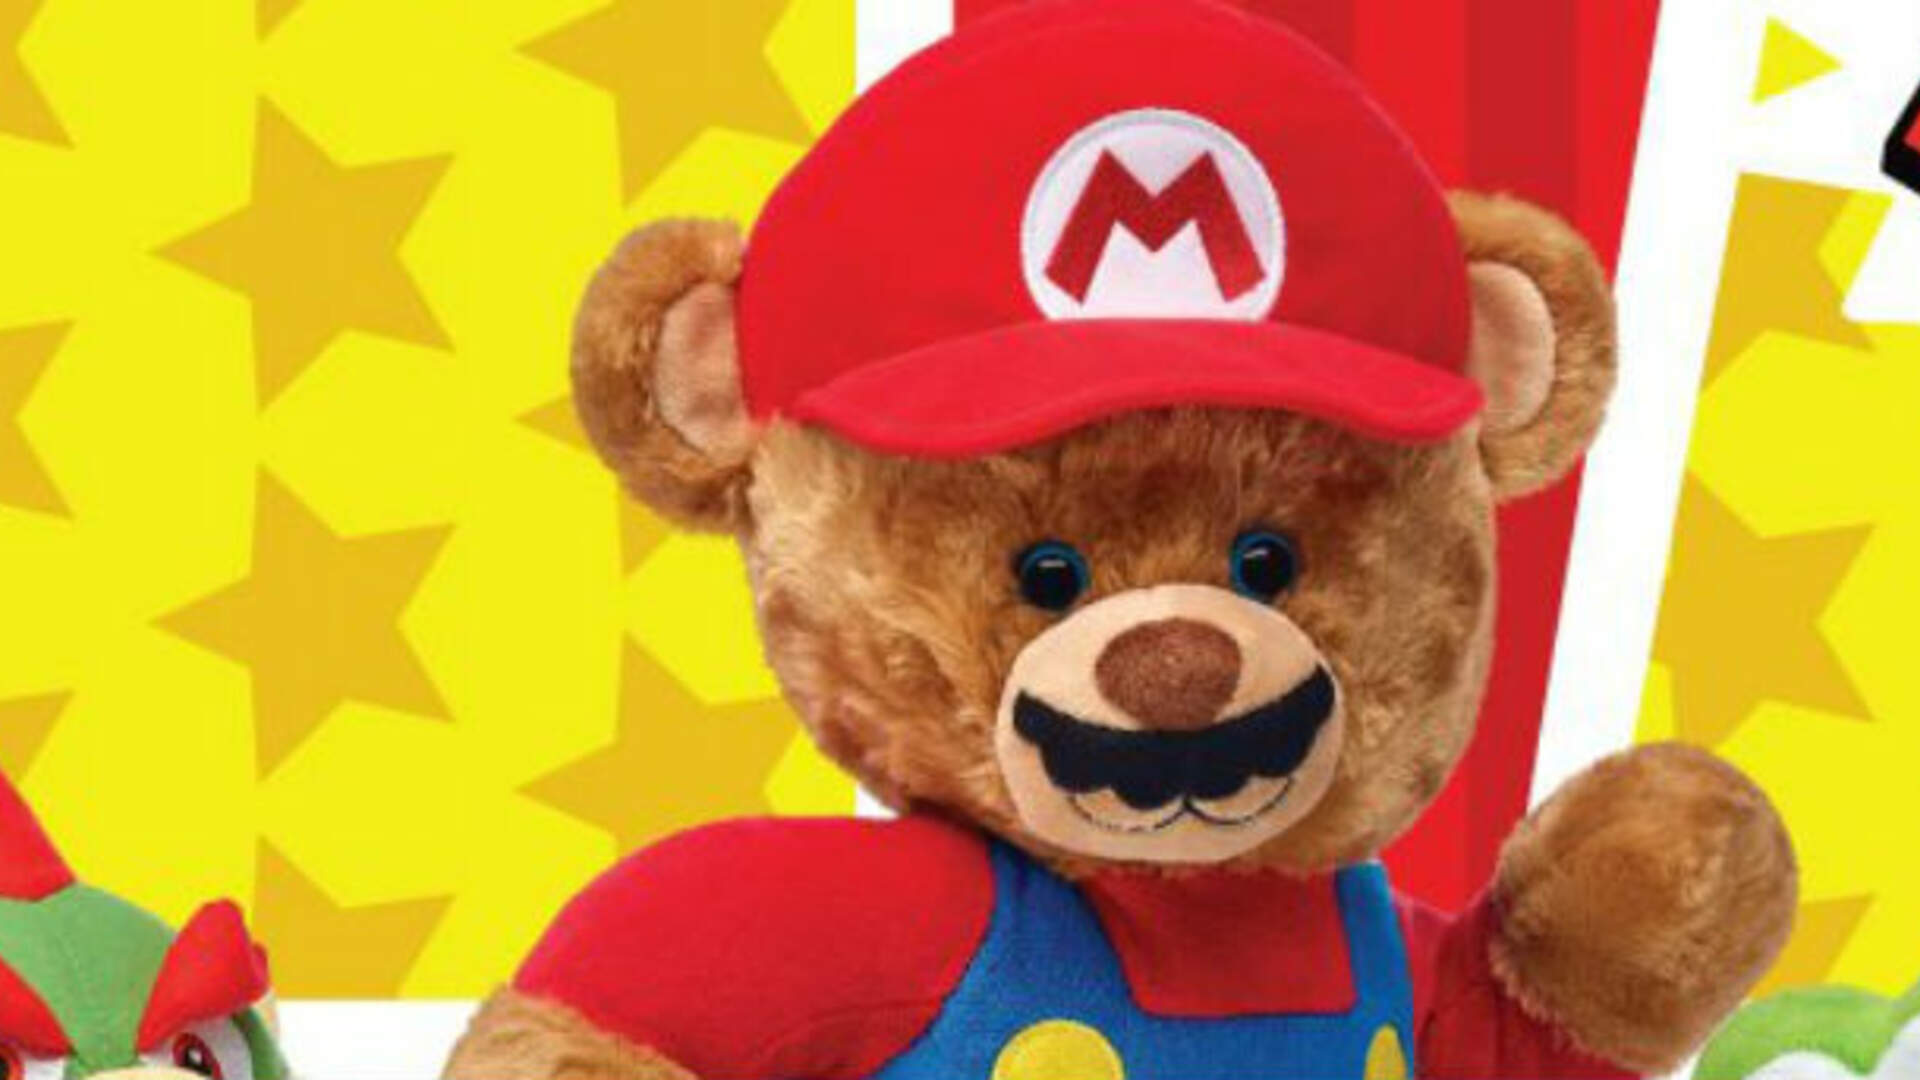 Nintendo Characters and Accessories Now Available at Build-A-Bear